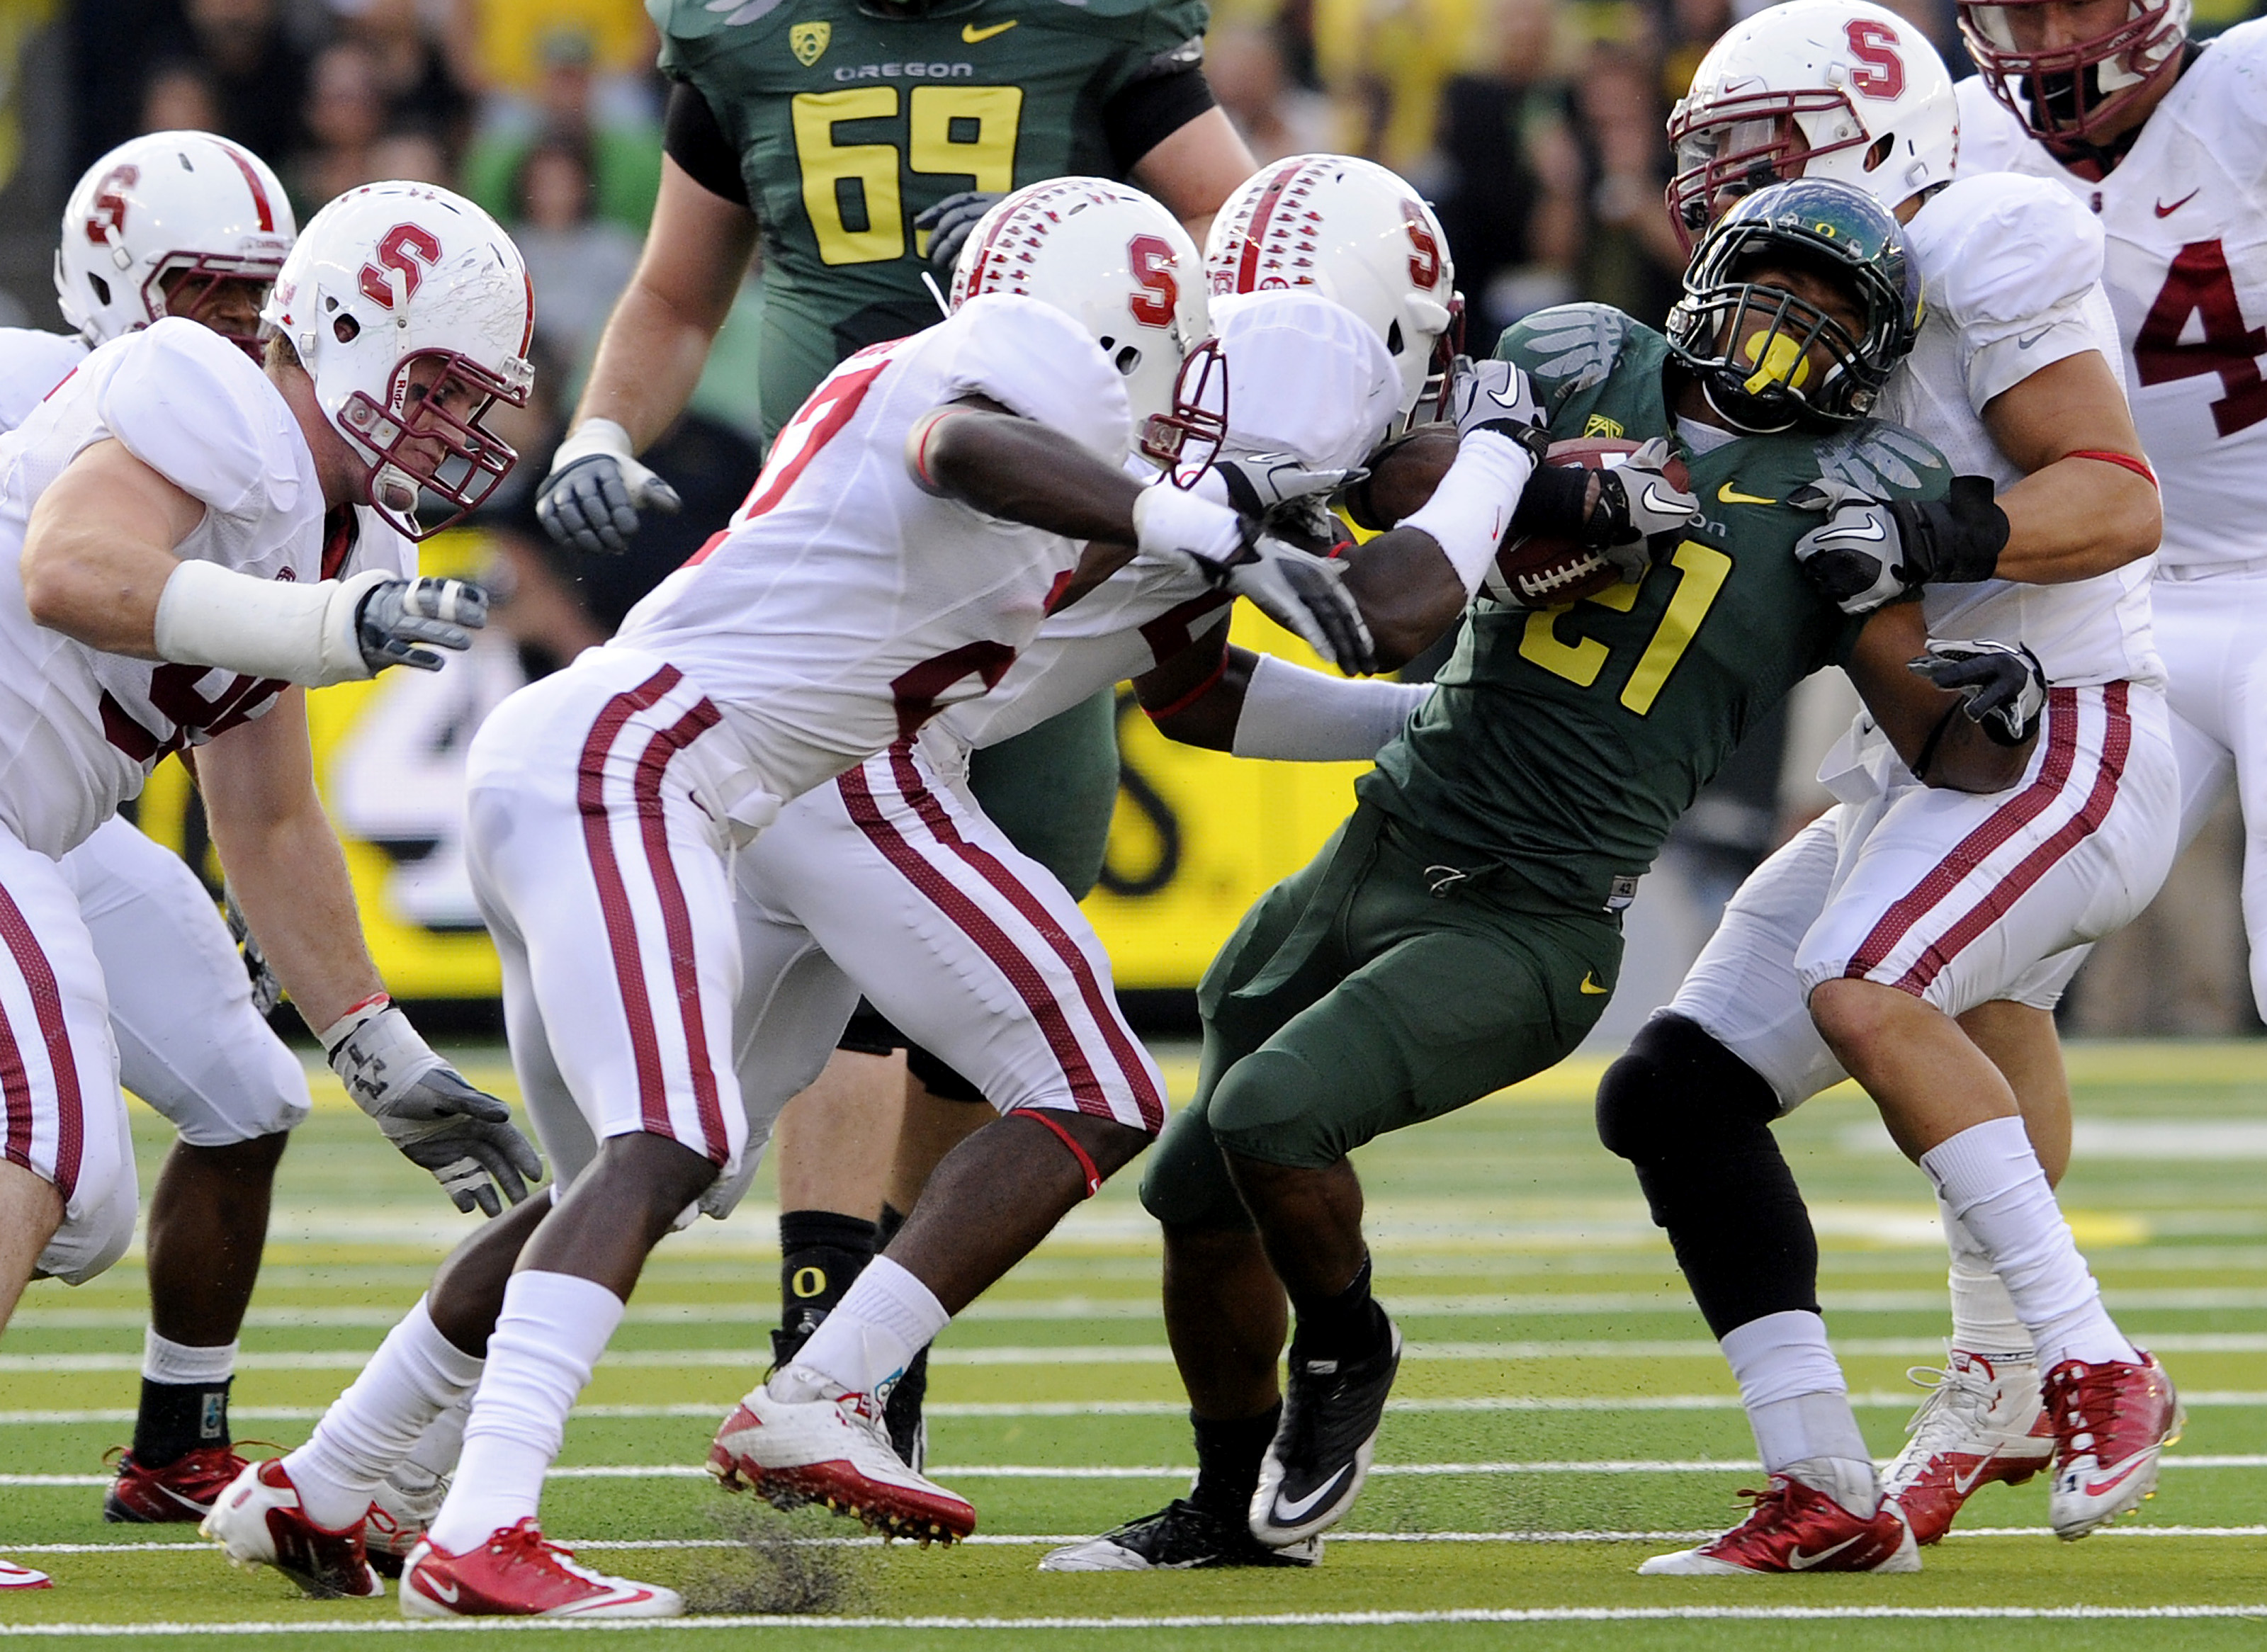 EUGENE, OR - OCTOBER 2: Stanford Cardinal defenders struggle to bring down running back LaMichael James #21 of the Oregon Ducks celebrates as he scores a touchdown in the second quarter of the game against the Stanford Cardinal at Autzen Stadium on Octobe